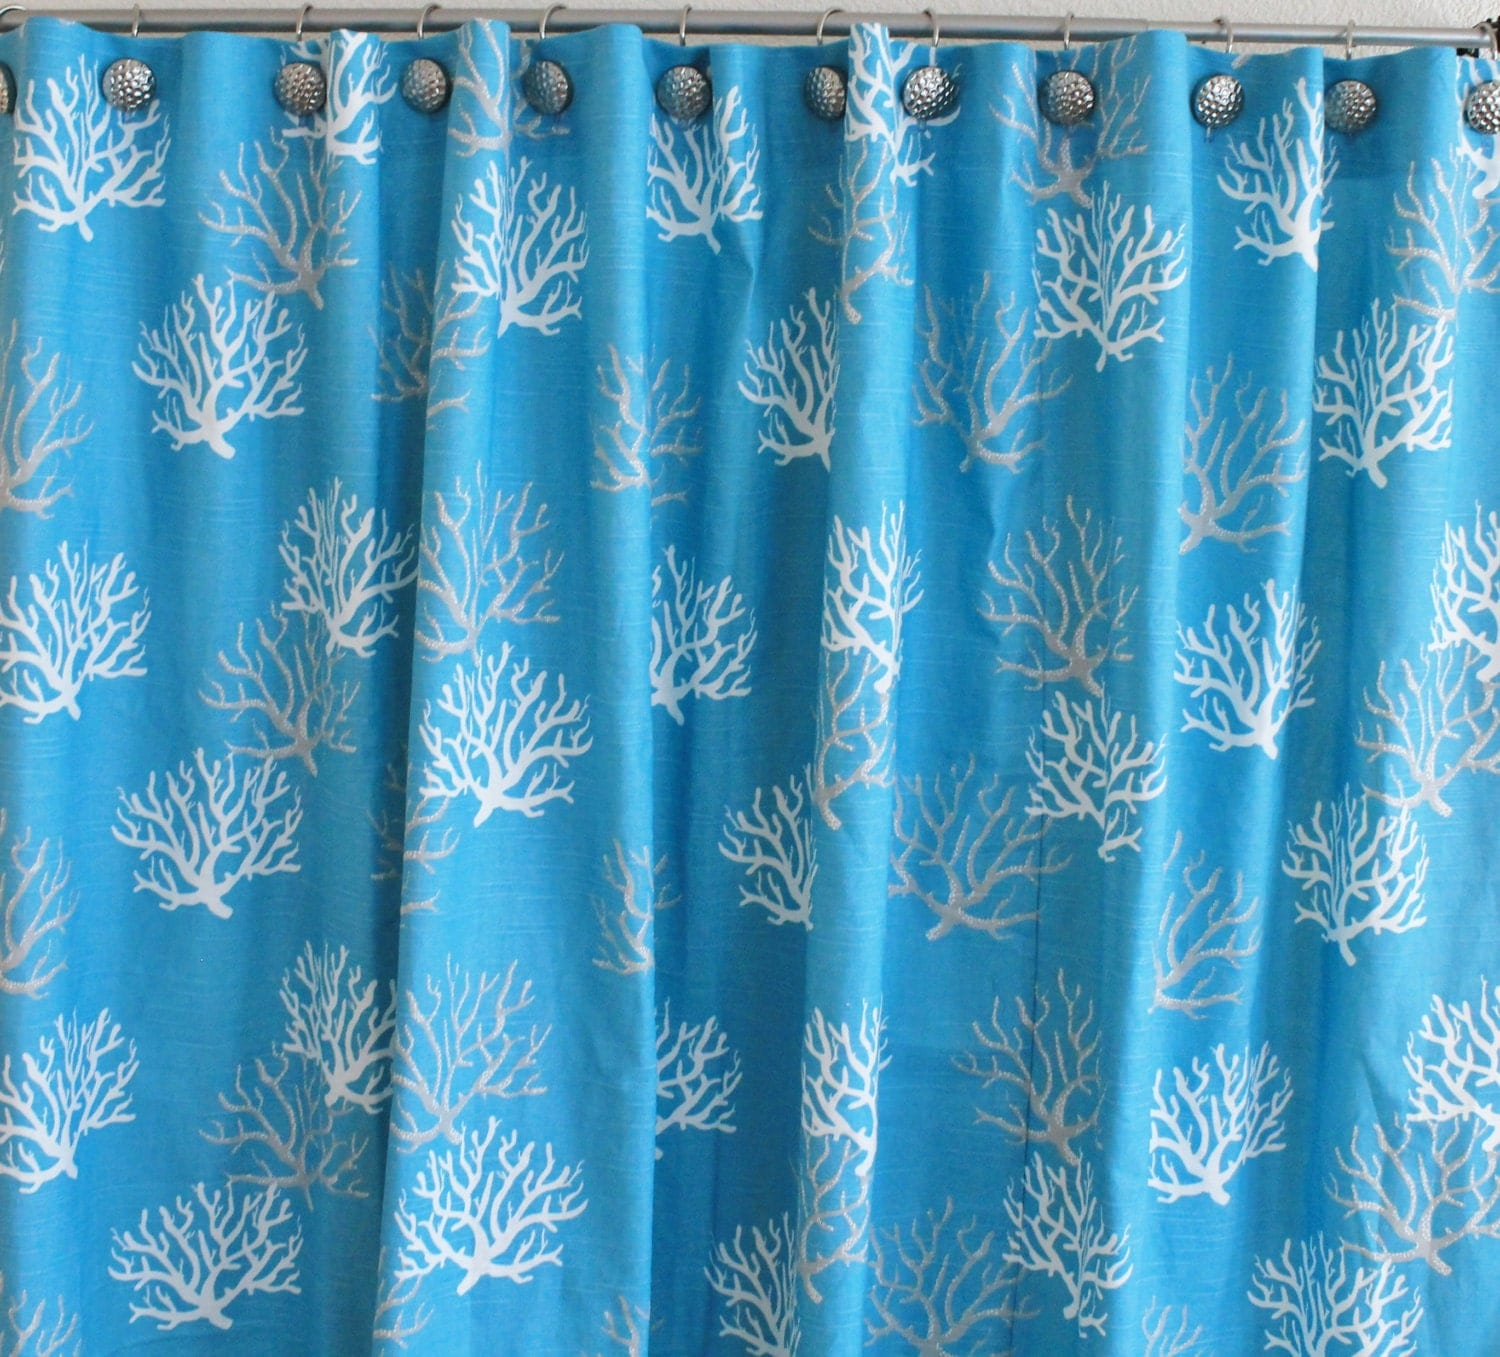 Fabric Shower Curtain 72 Wide Premier Print Coral